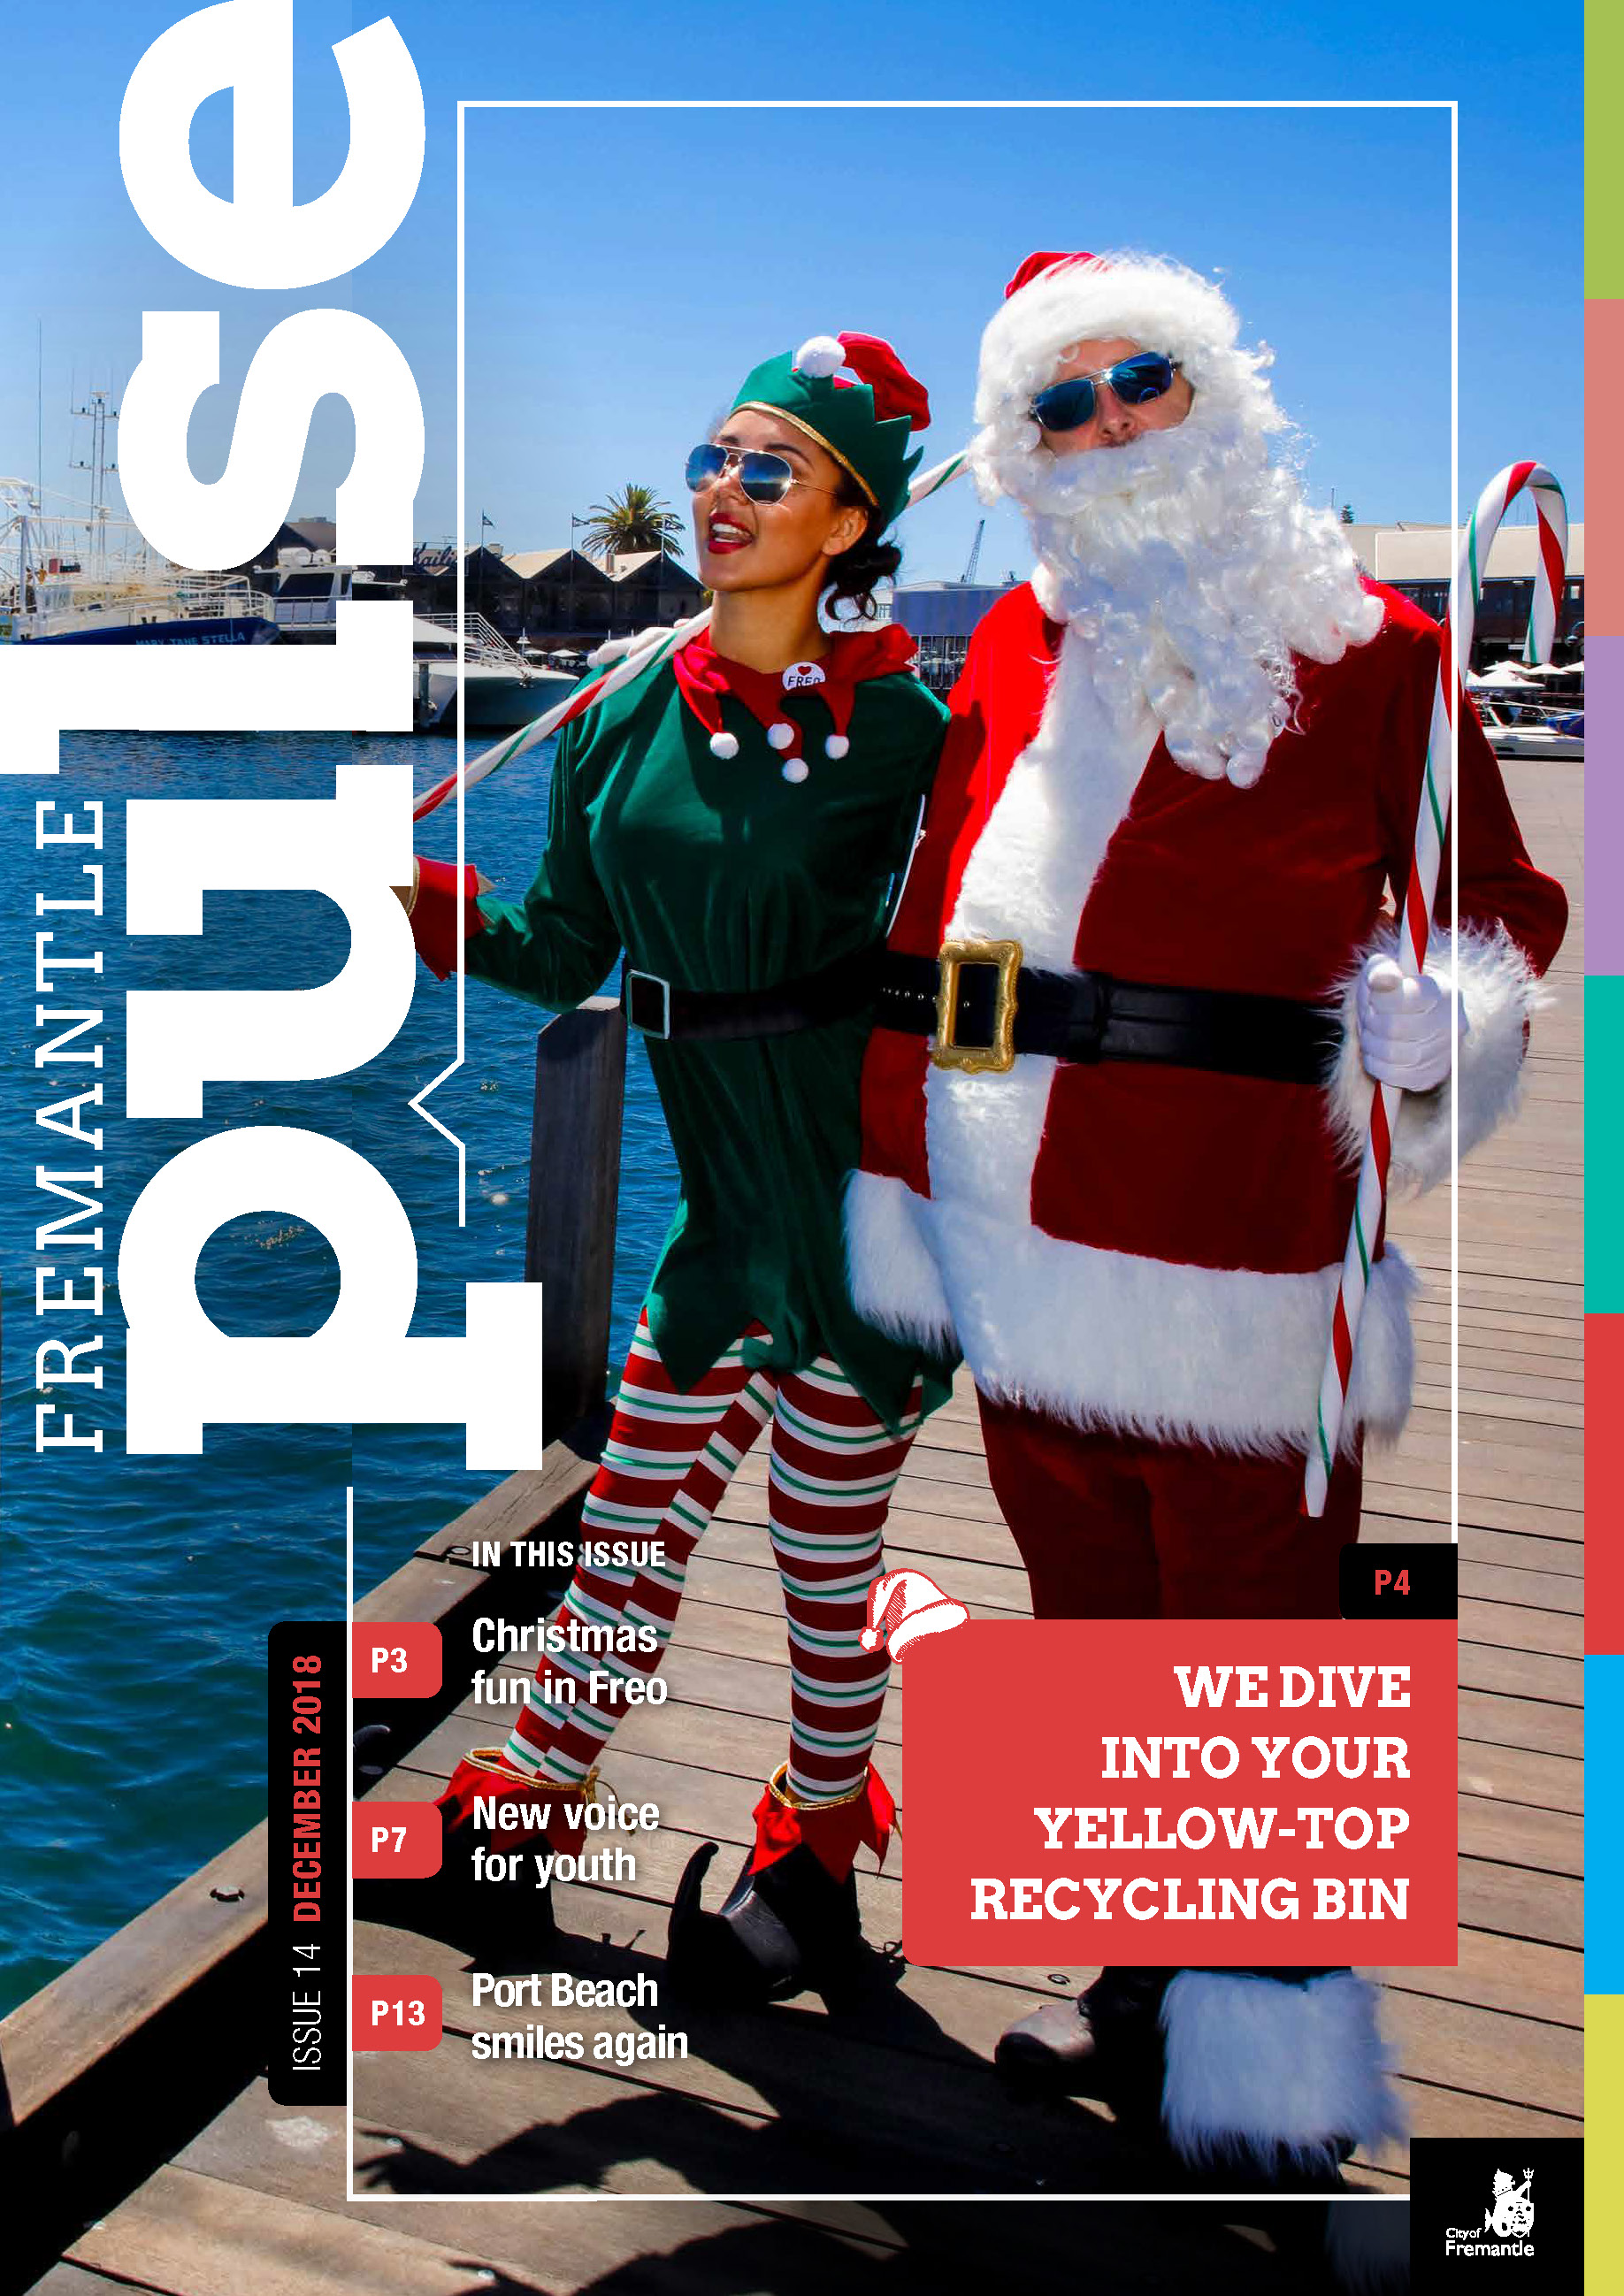 Santa and an Elf standing on the Fishing Boat Harbour boardwalk